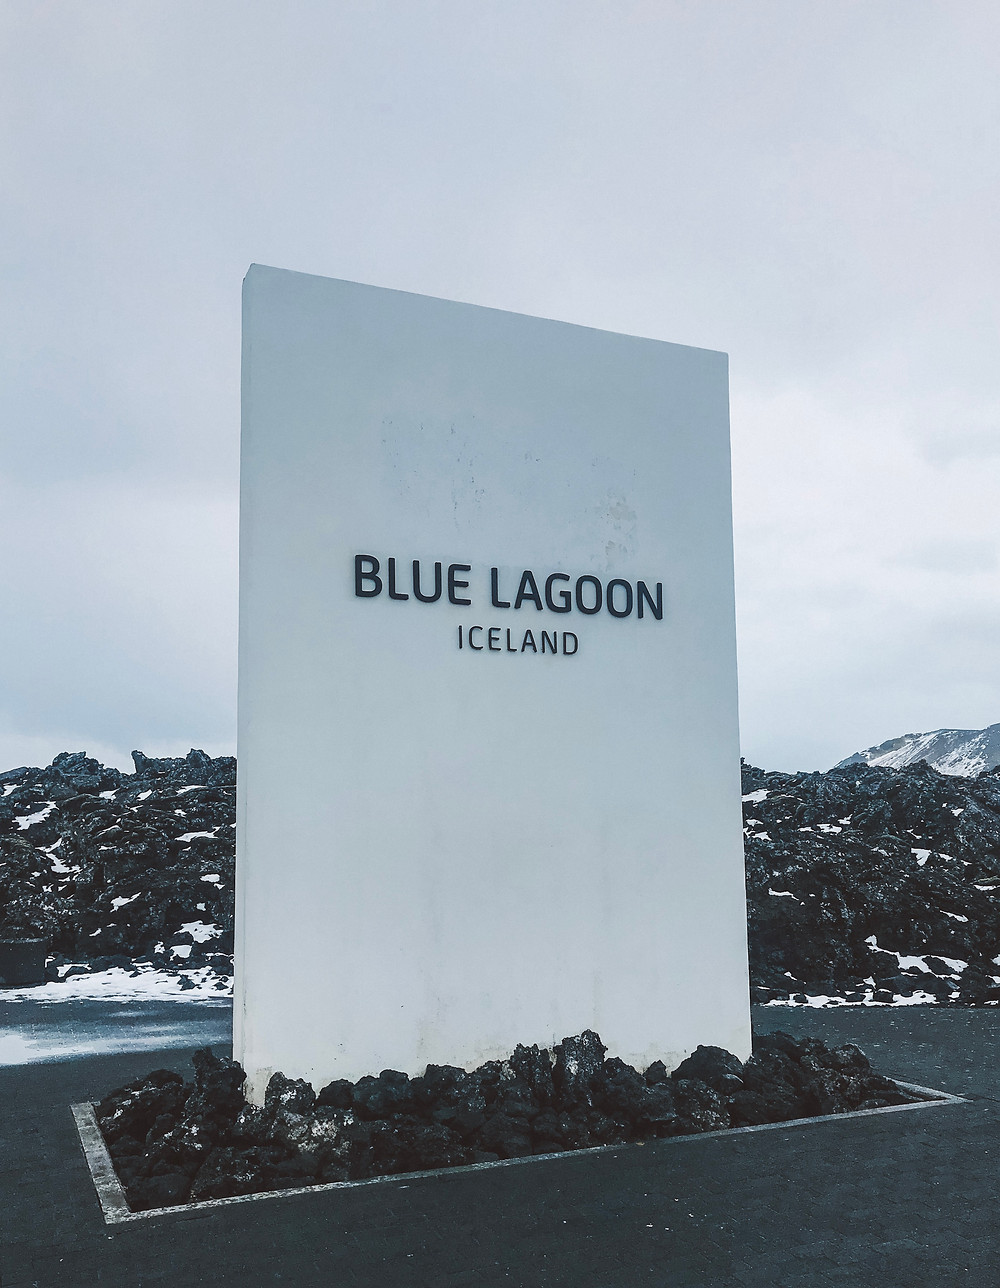 Entrance to the Blue Lagoon surrounded by lava landscape